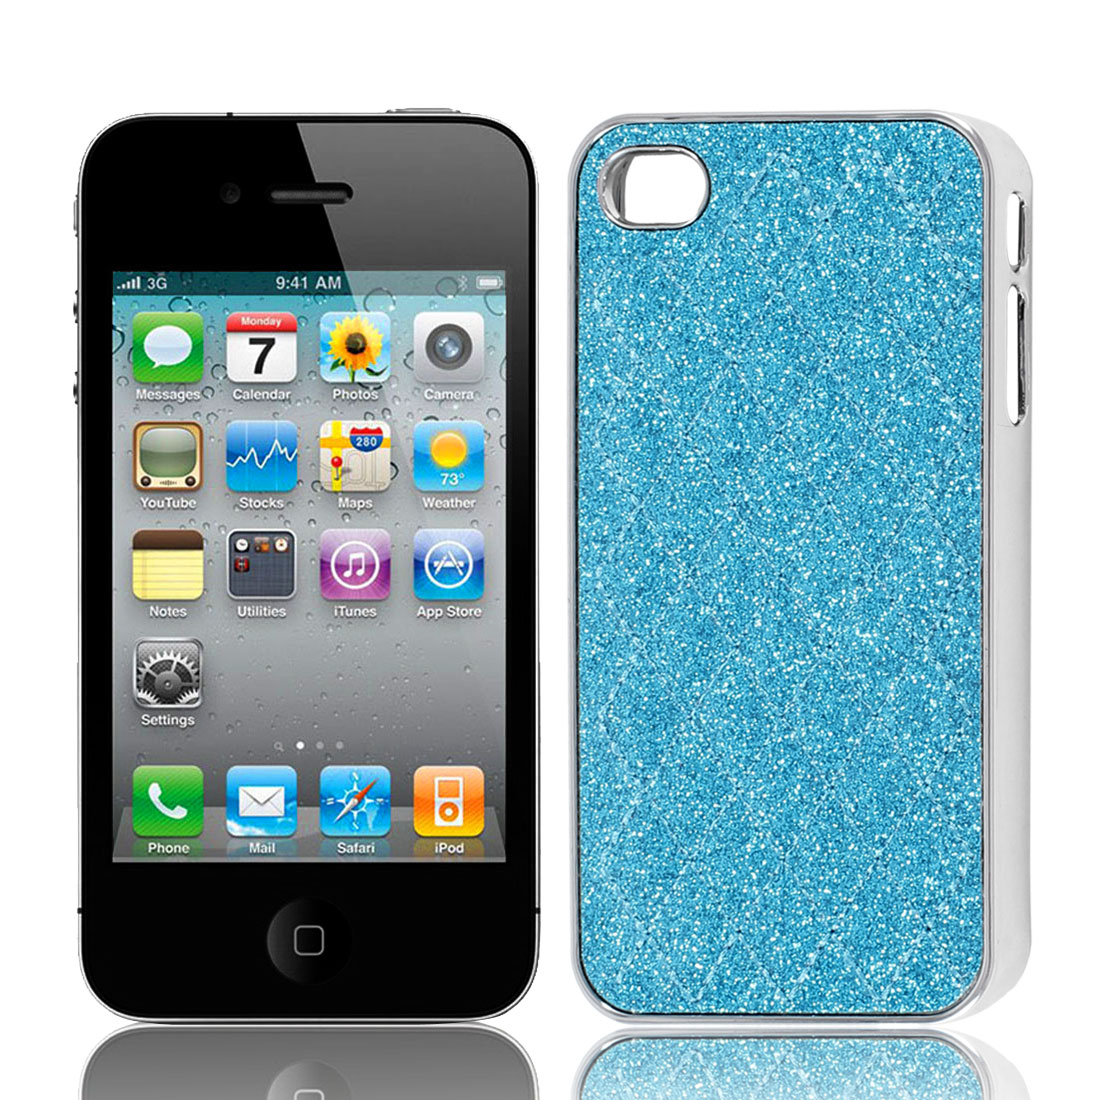 Sky Blue Powder Rhombus Print Hard Back Case Cover for iPhone 4 4G 4S 4GS 4th